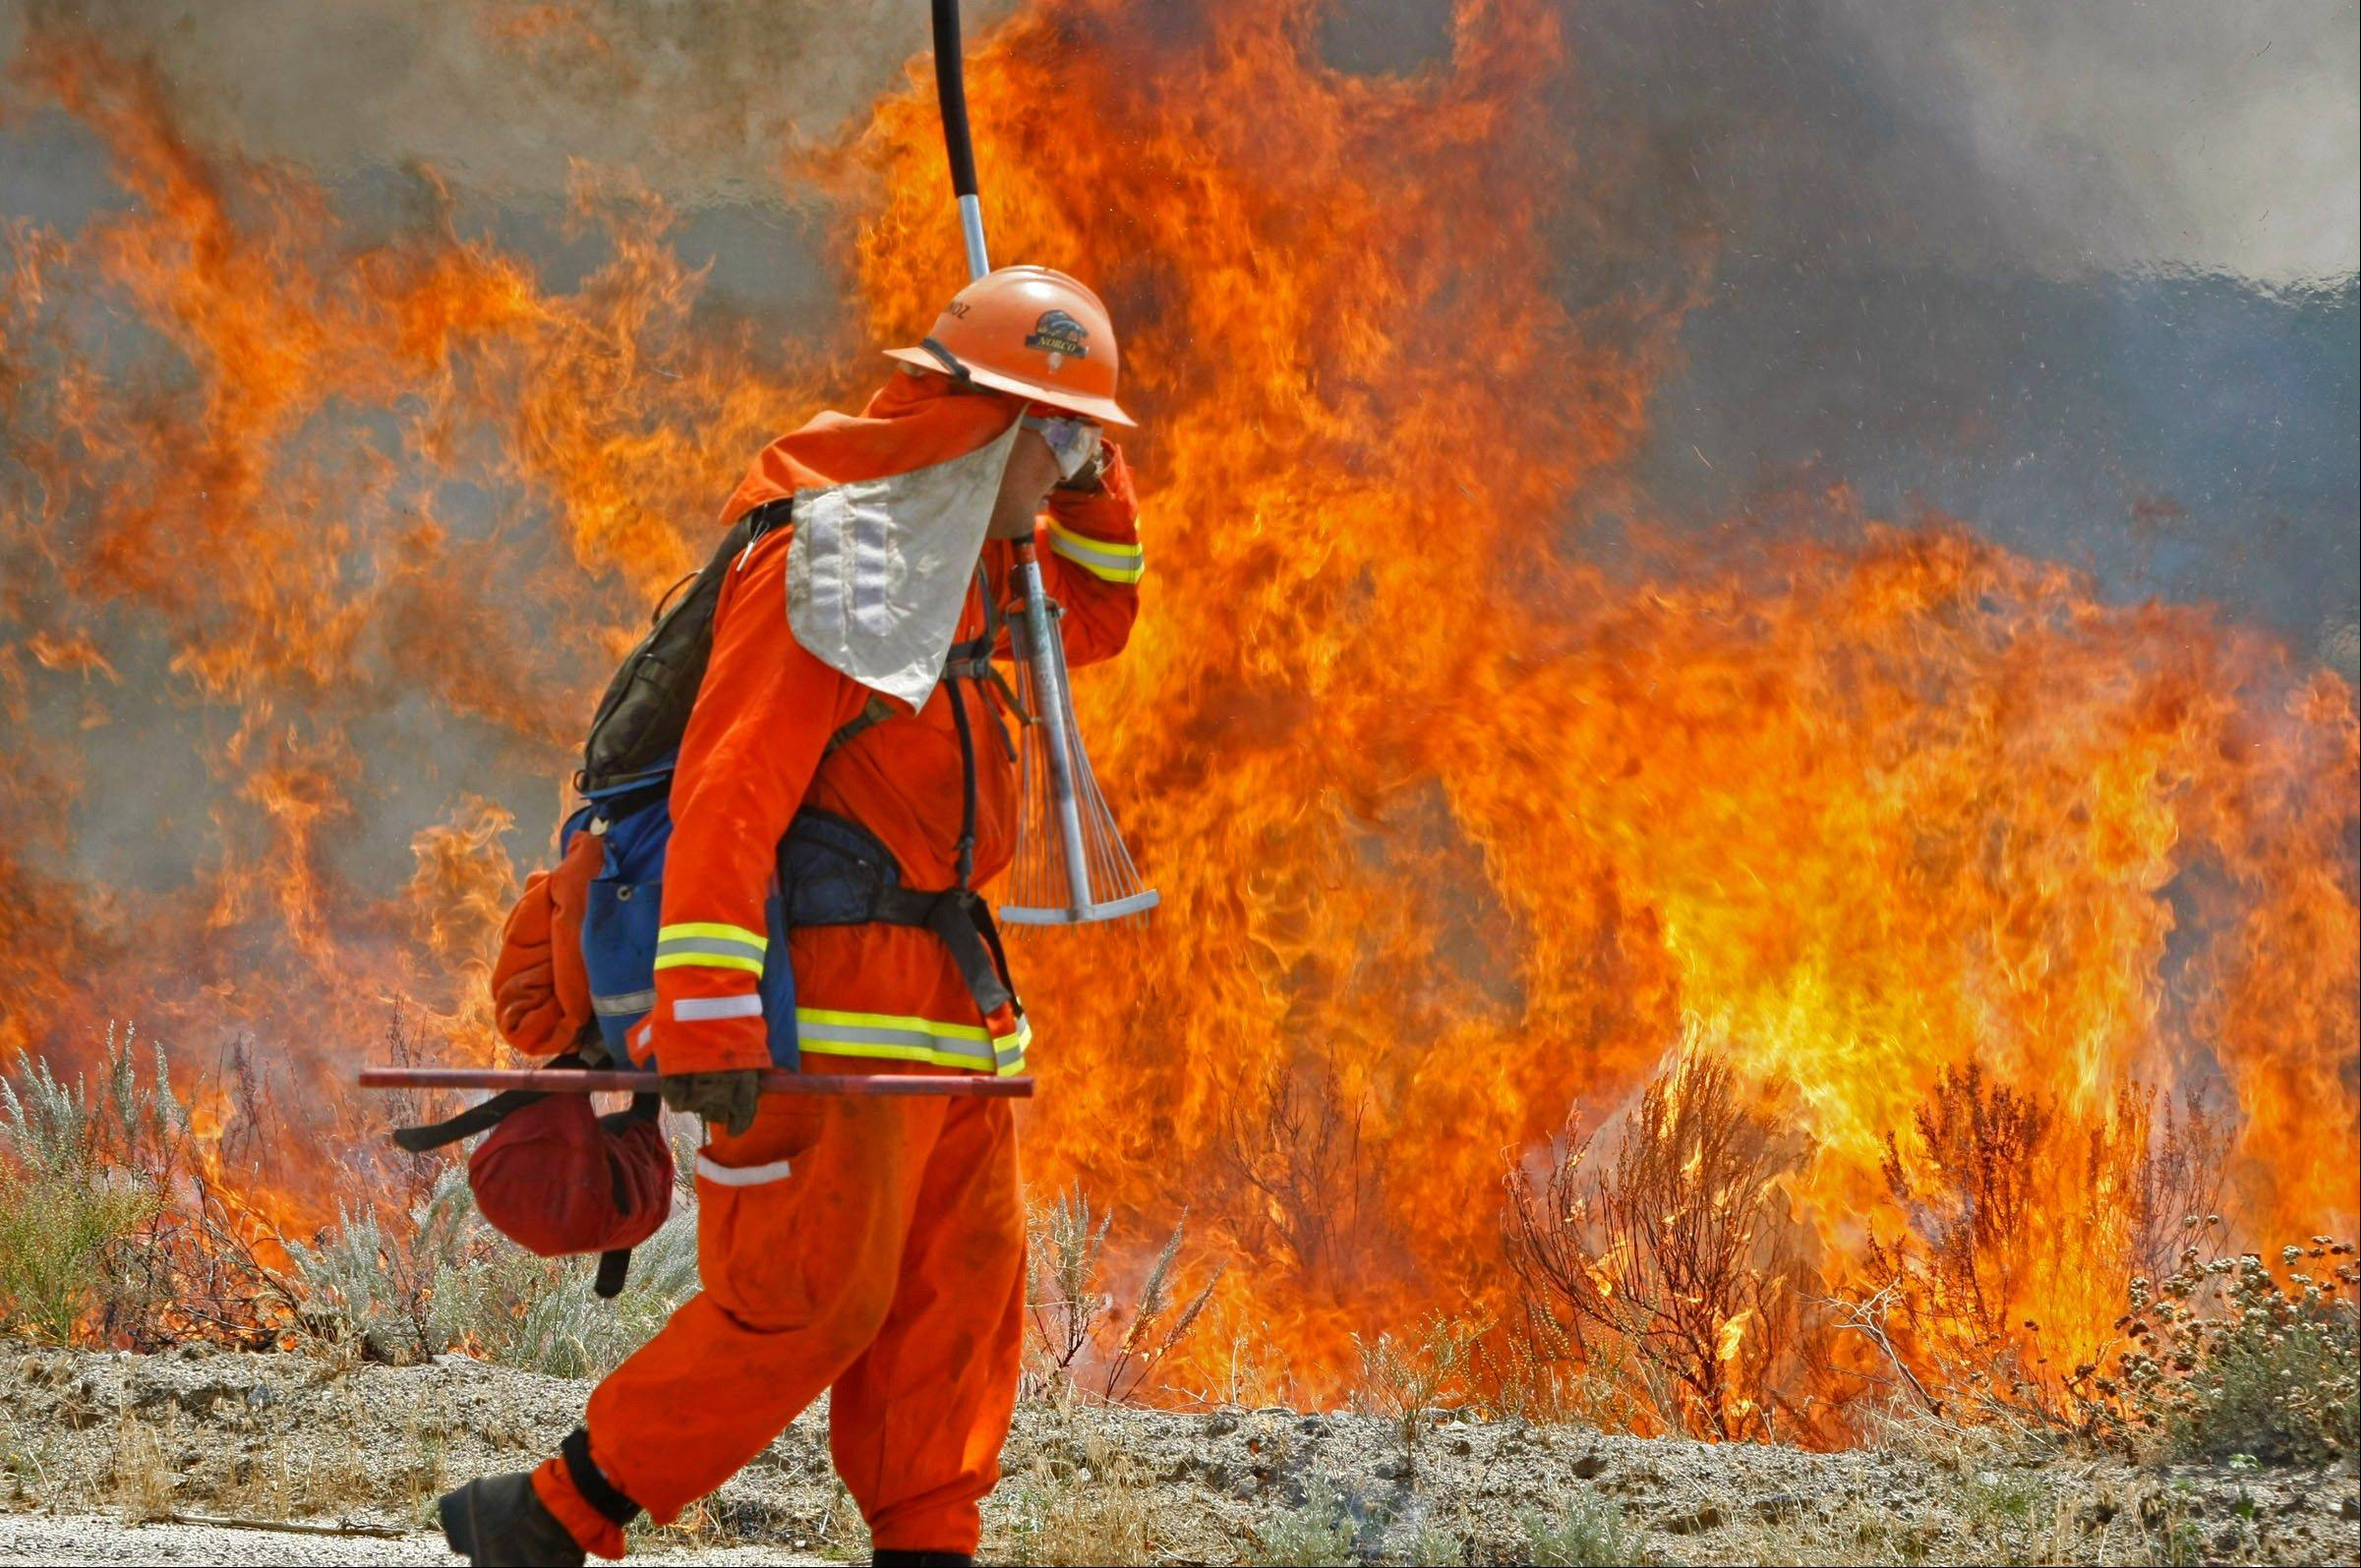 A firefighter from the Norco Conservation Camp shields his face against the heat of a backfire his crew intentionally set along Montezuma Valley road in Ranchita, Calif. on Thrusday, Aug 15, 2012. The backfire was set to stop the approaching wildfire burning through the Anza-Borrego Desert State Park in northern San Diego County. (AP Photo/Los Angeles Times, Don Bartletti) NO FORNS; NO SALES; MAGS OUT; ORANGE COUNTY REGISTER OUT; LOS ANGELES DAILY NEWS OUT; VENTURA COUNTY STAR OUT; INLAND VALLEY DAILY BULLETIN OUT; MANDATORY CREDIT, TV OUT